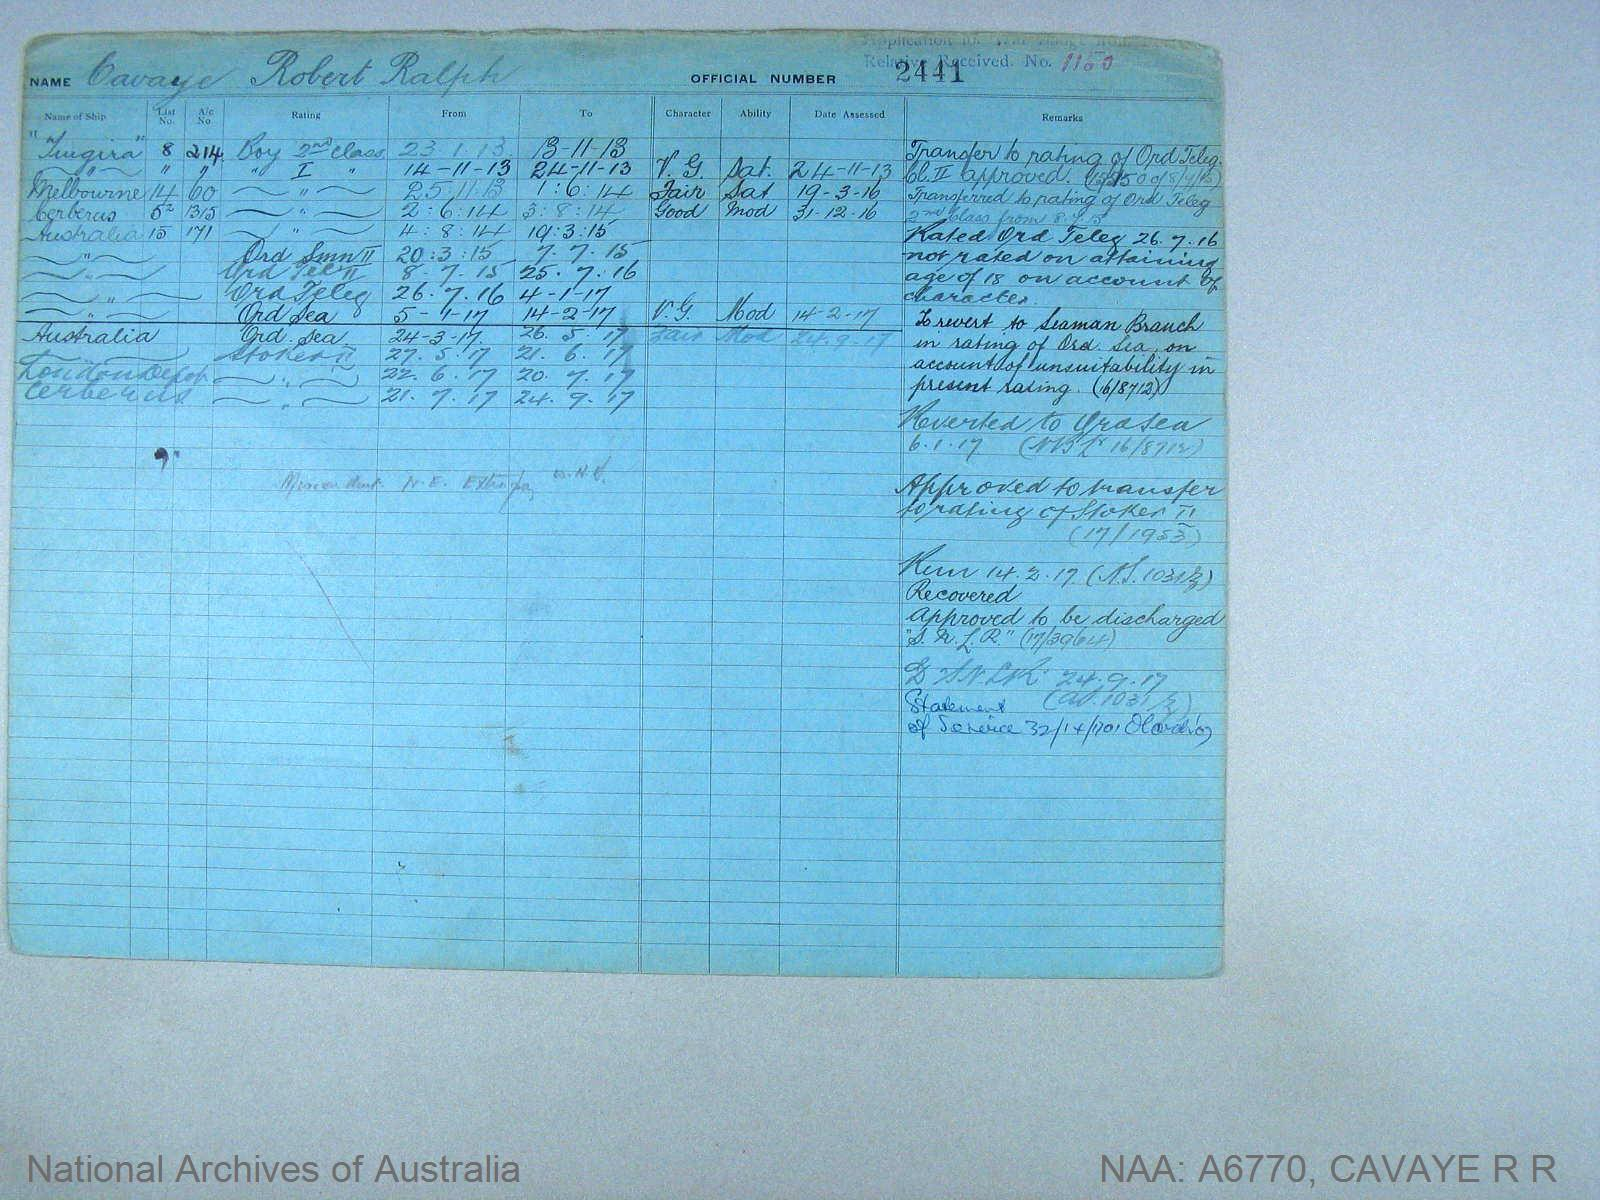 CAVAYE ROBERT RALPH : Service Number - 2441 : Date of birth - 20 Mar 1898 : Place of birth - LISMORE NSW : Place of enlistment - SYDNEY : Next of Kin - CAVAYE ETHEL